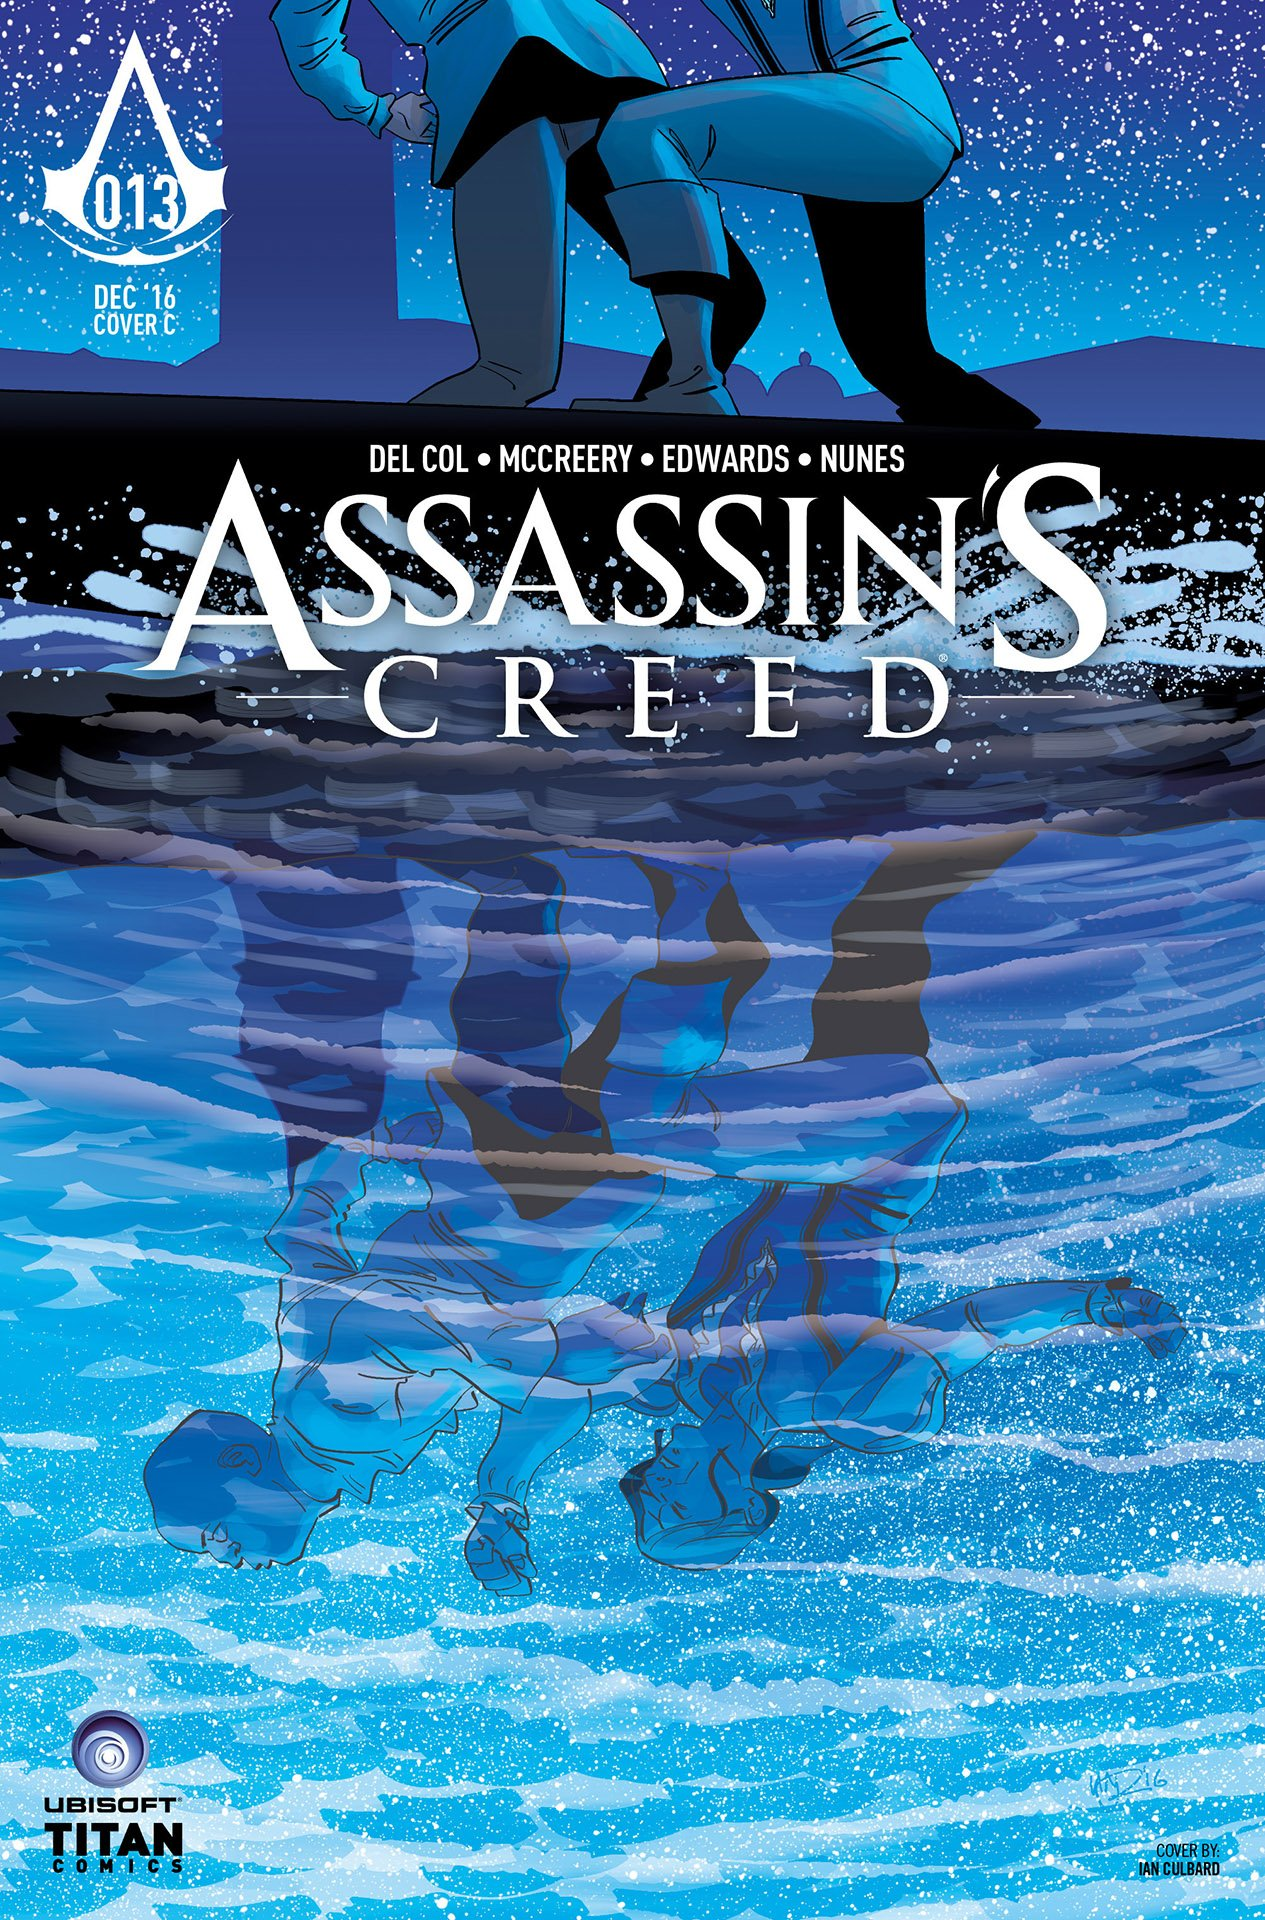 Assassin's Creed 013 (cover c) (December 2016)